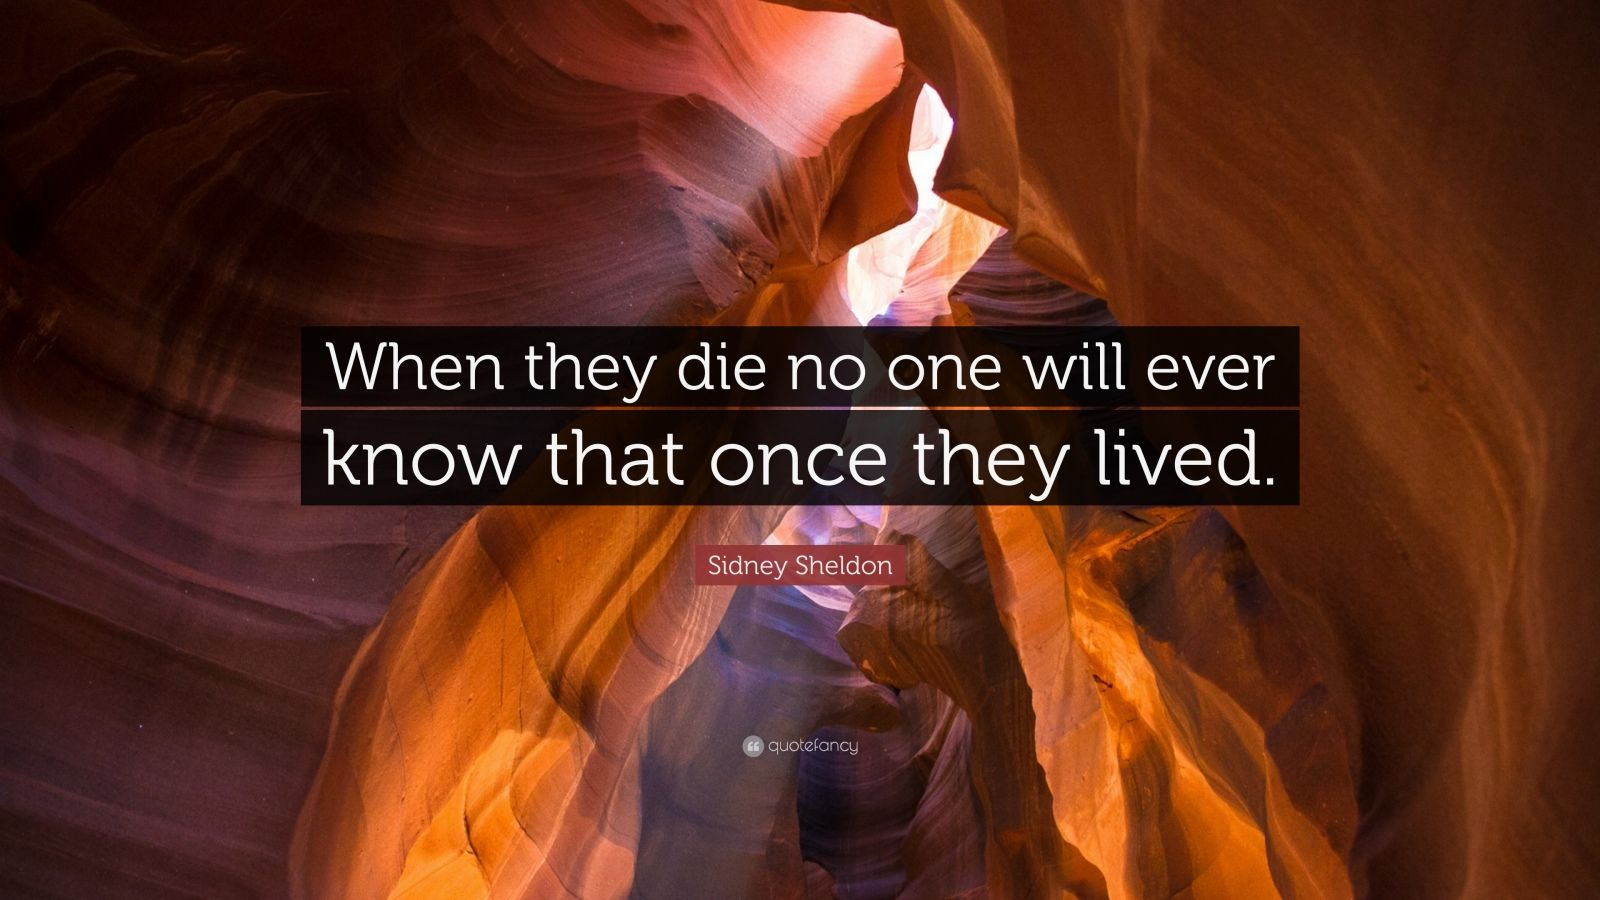 """Sidney Sheldon Quote: """"When they die no one will ever know that once they lived."""""""